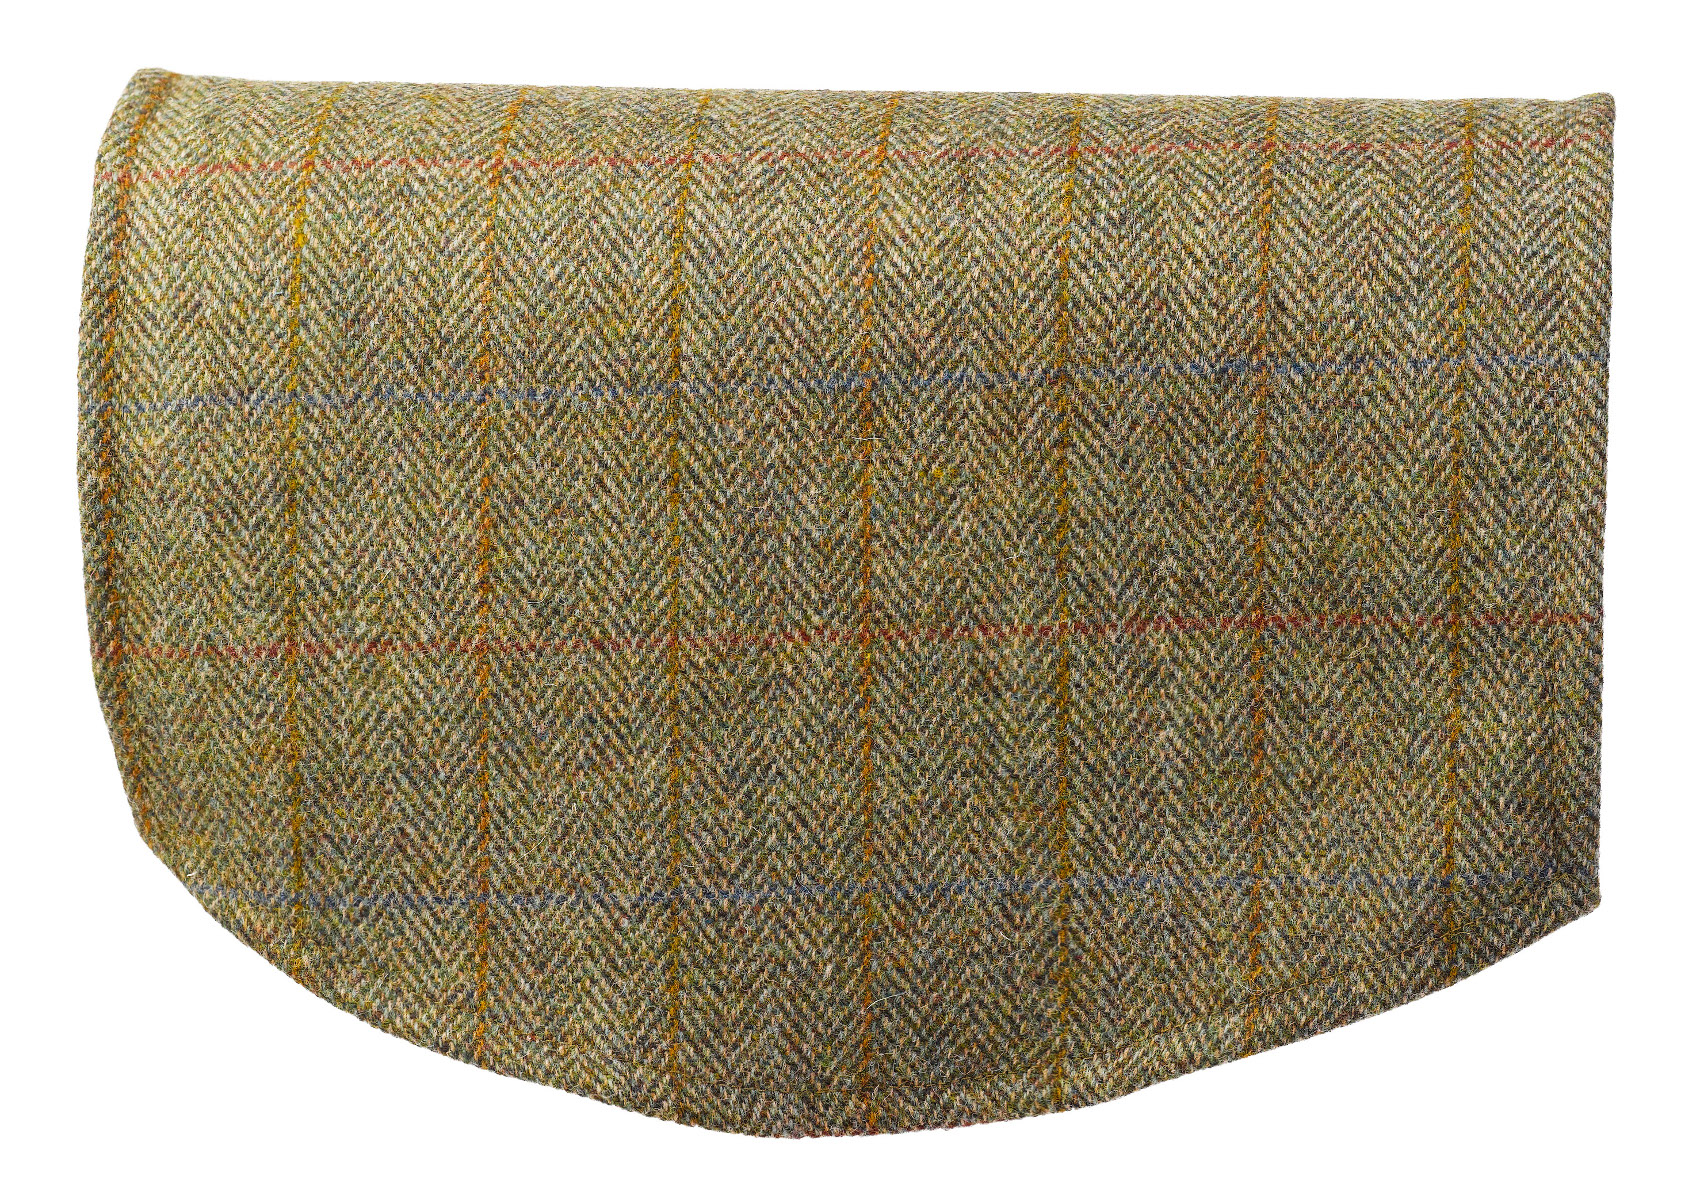 chair covers scotland babies r us chairs single antimacassar chairback pure new wool scottish tweed